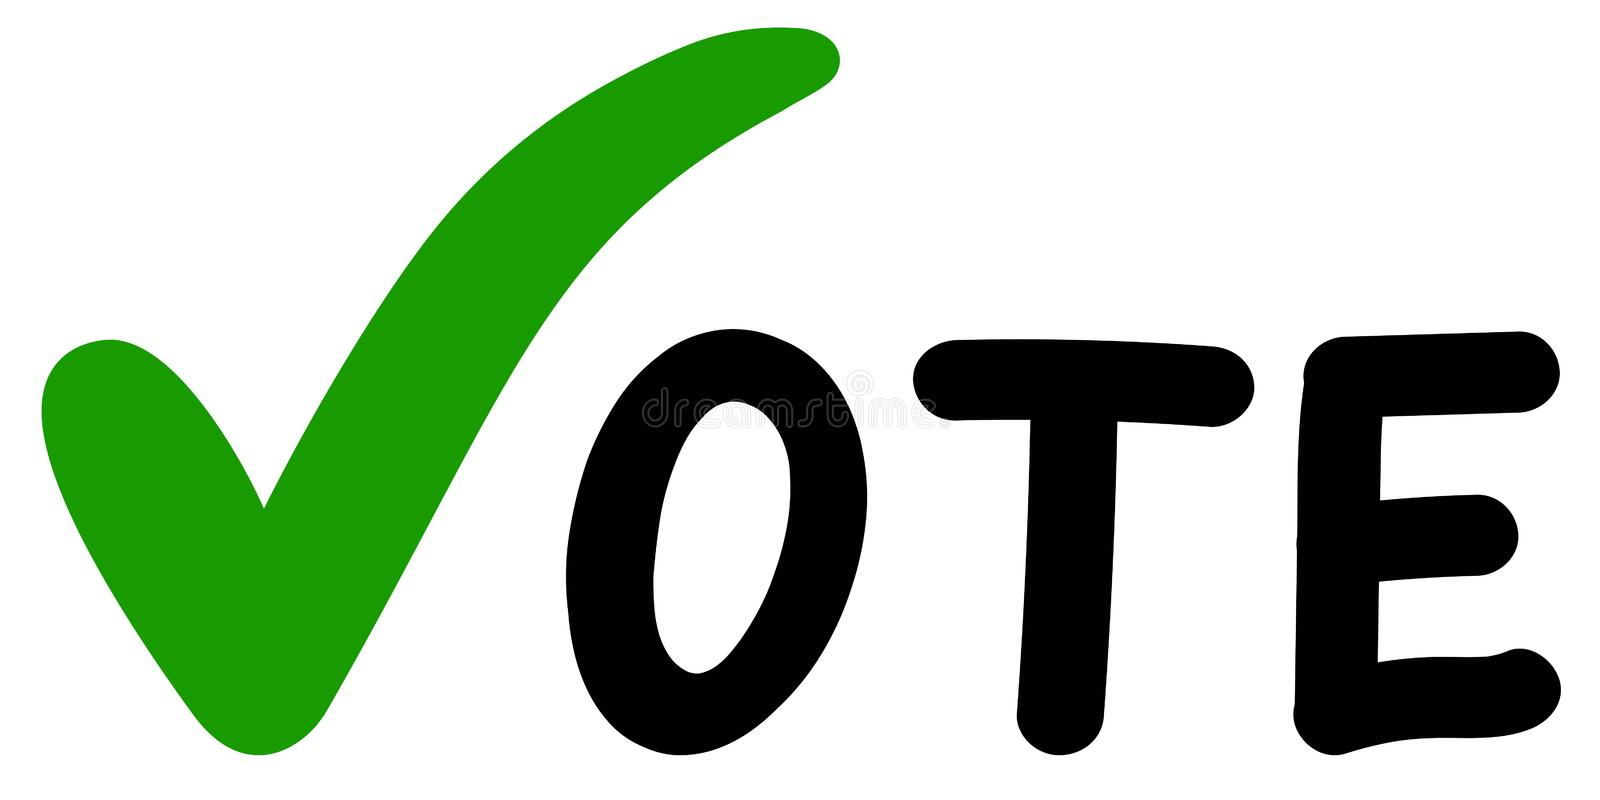 Voting Symbols Hands Design Elections Green Check Marks Vote Stock